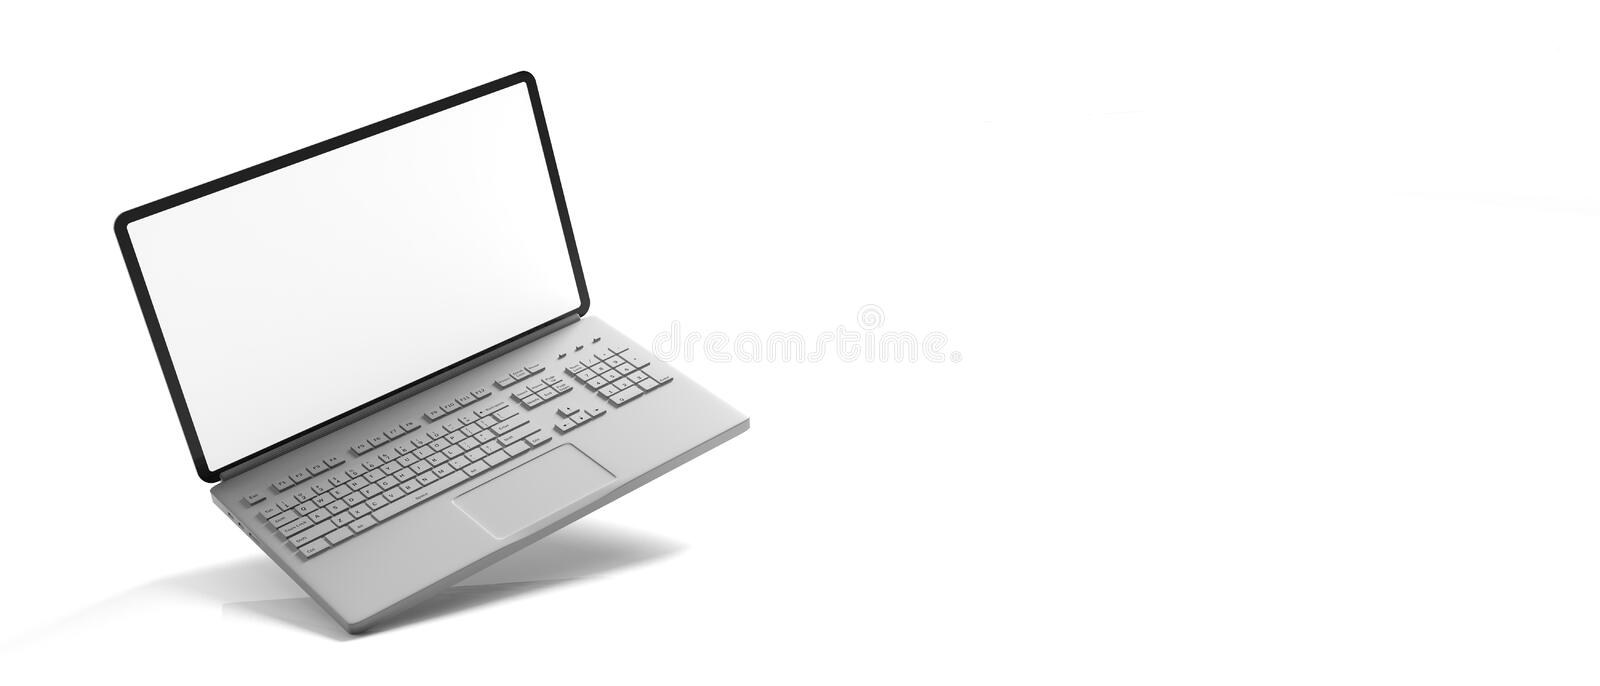 Computer laptop with blank screen isolated on white background, banner, copy space. 3d illustration royalty free illustration